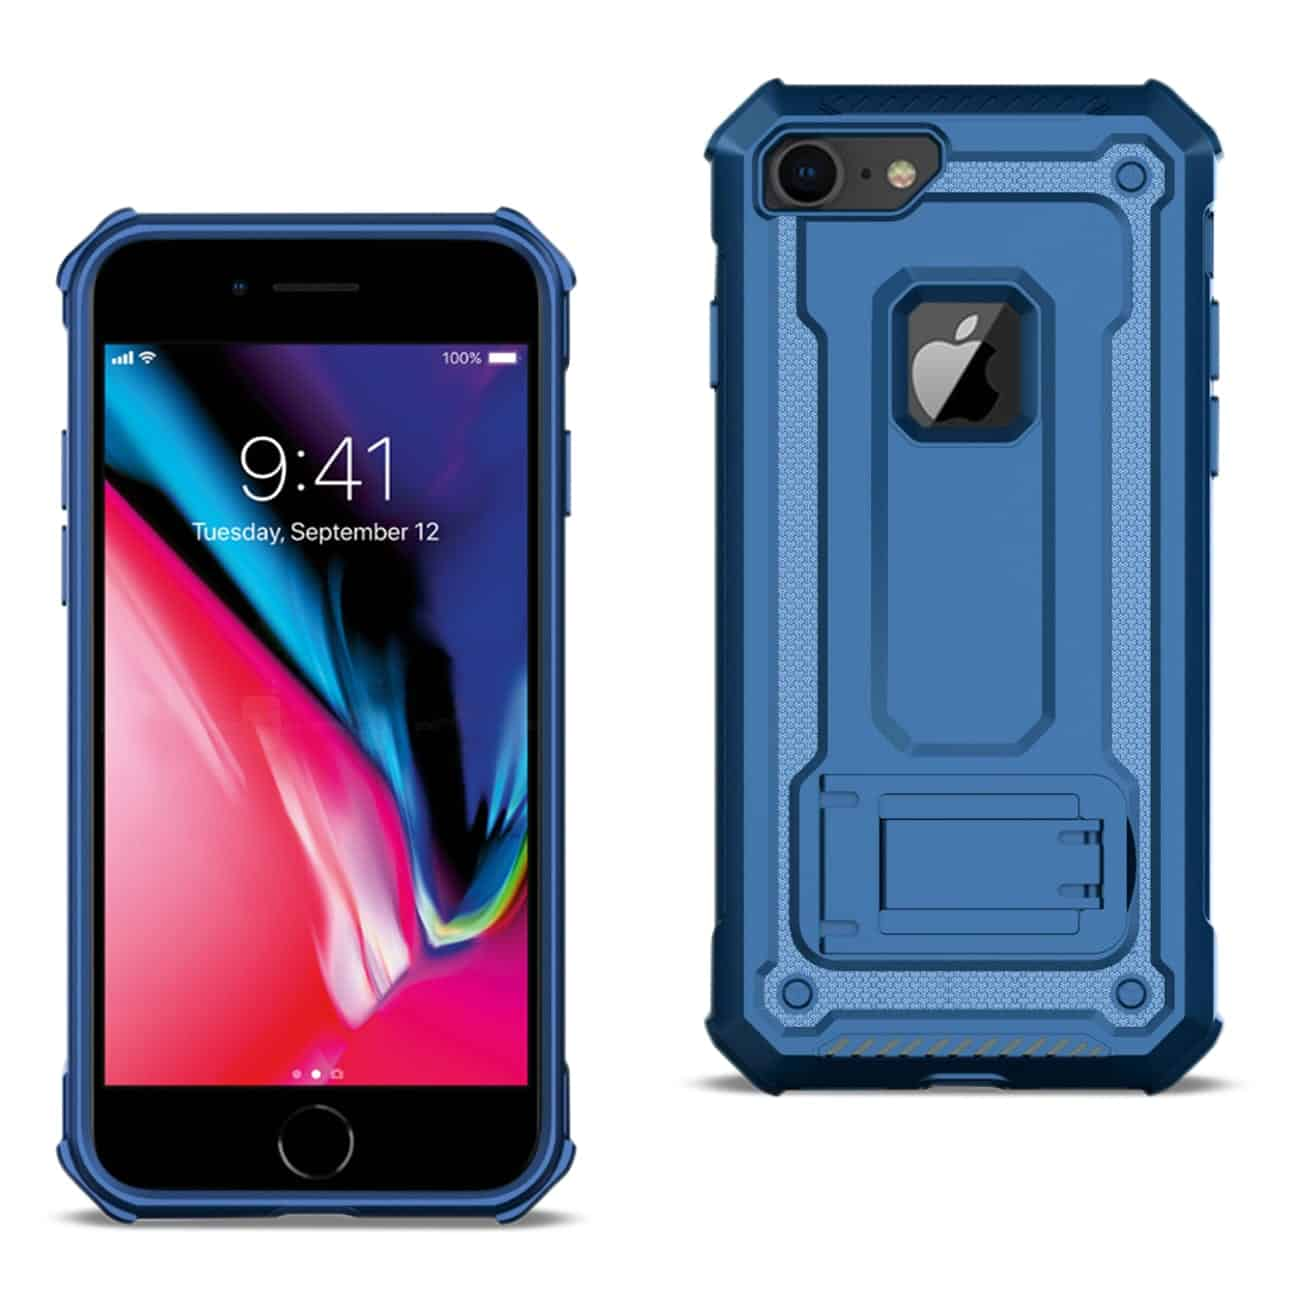 APPLE IPHONE 8 Case With Kickstand In Blue